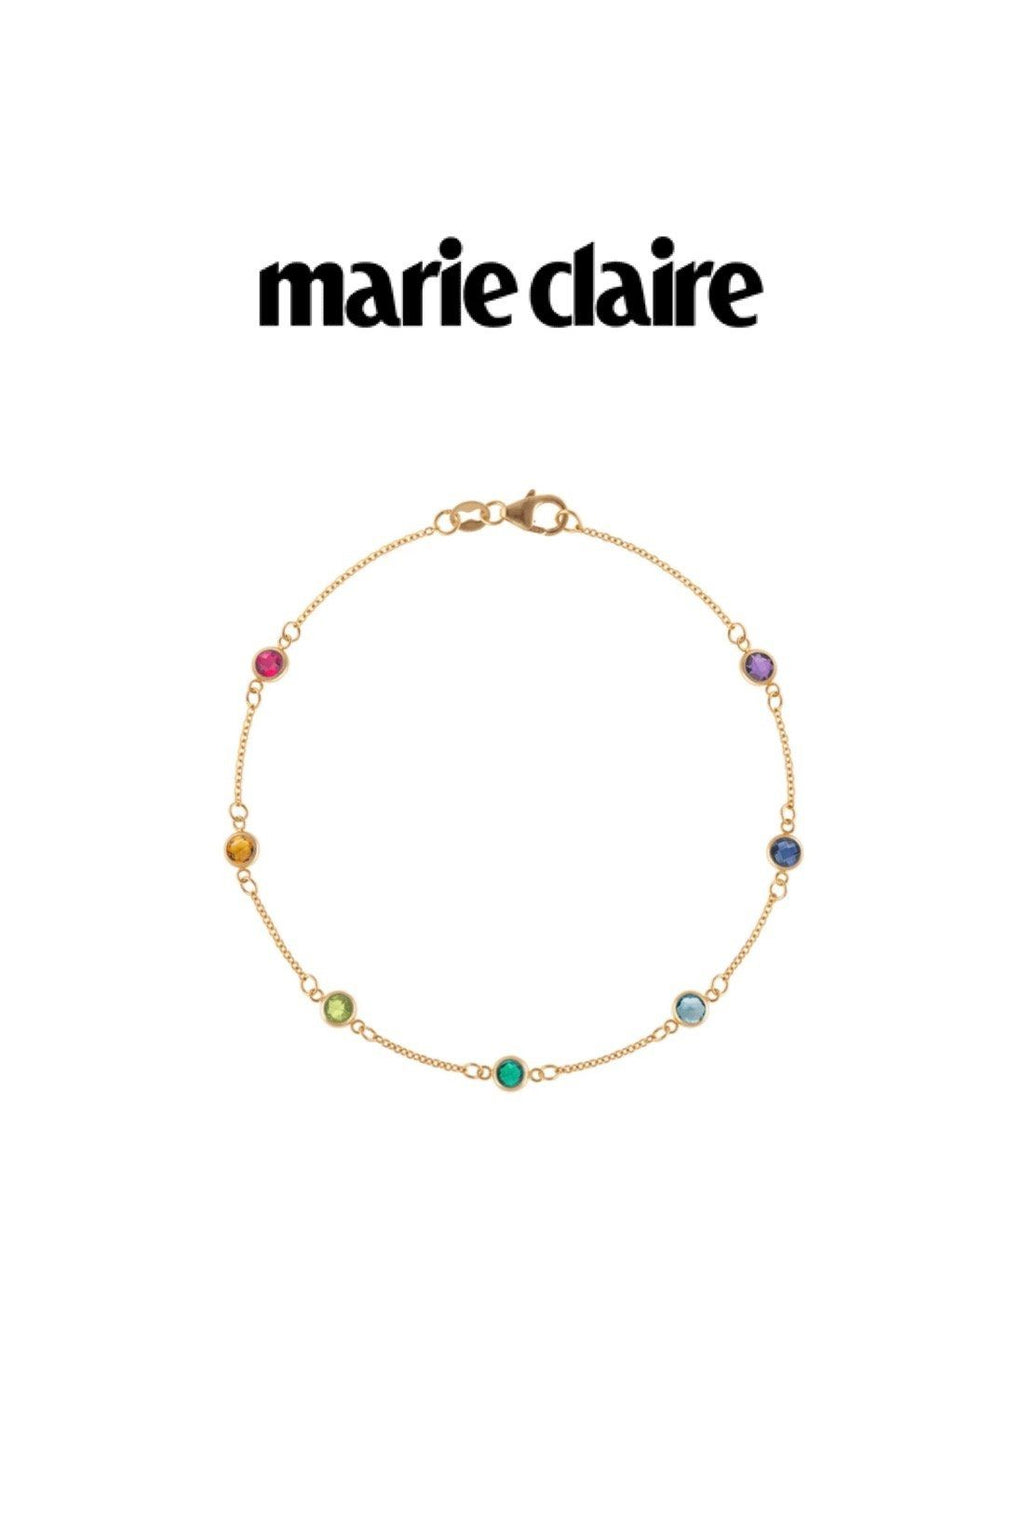 Marie Claire- 13 Pride Clothes & Accessories That Include a Donation to the Community